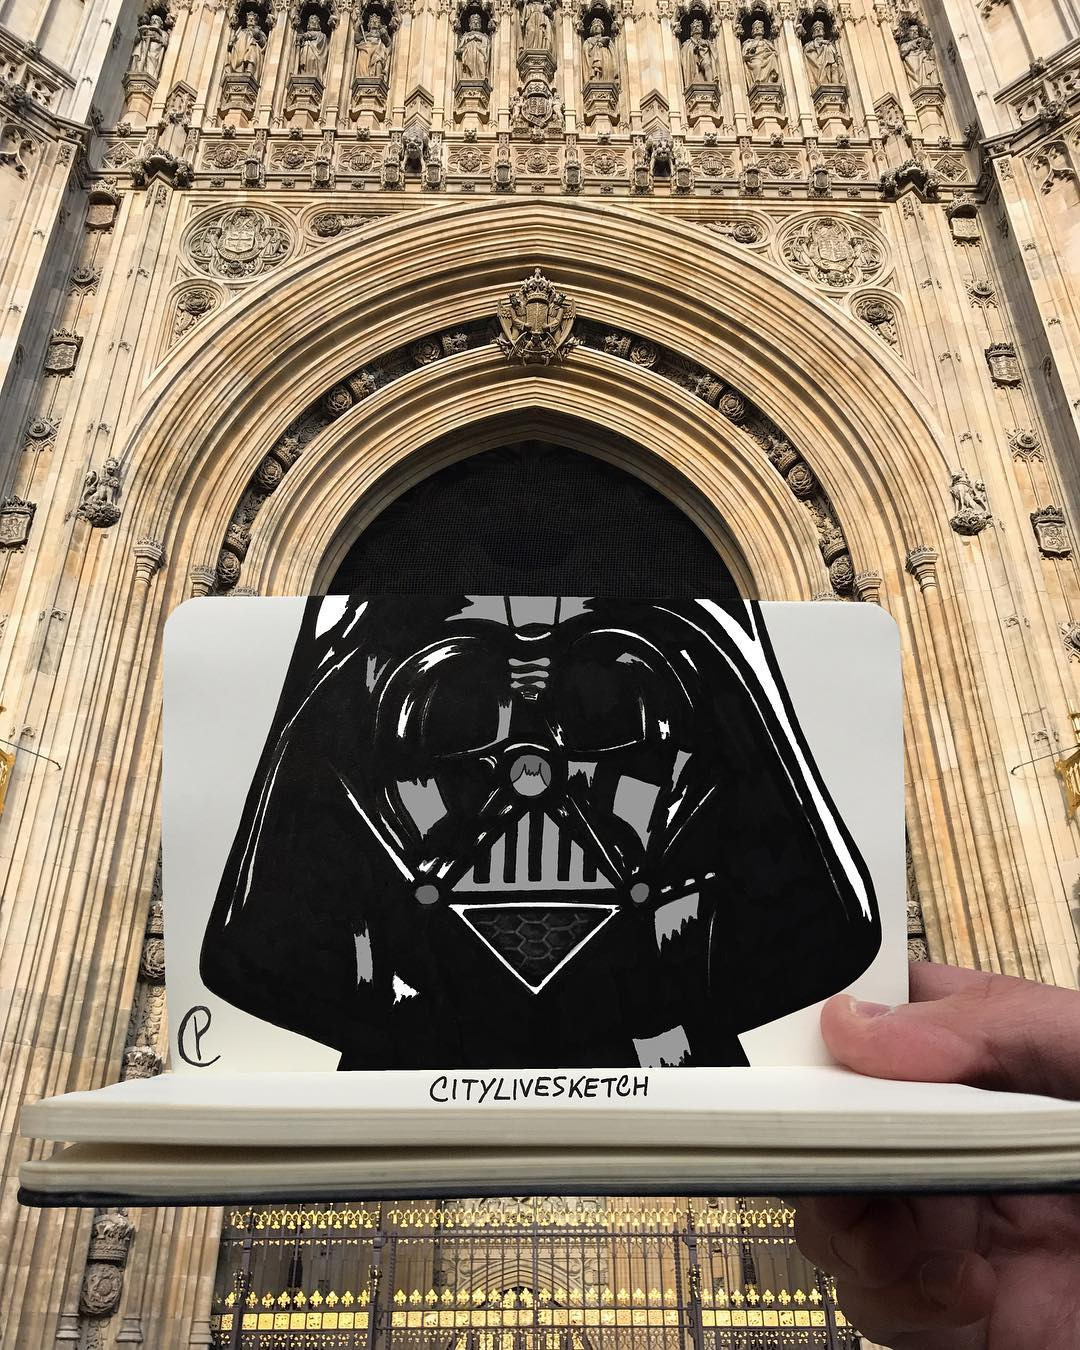 Artist merges photos of real-life structures with playful sketches 17